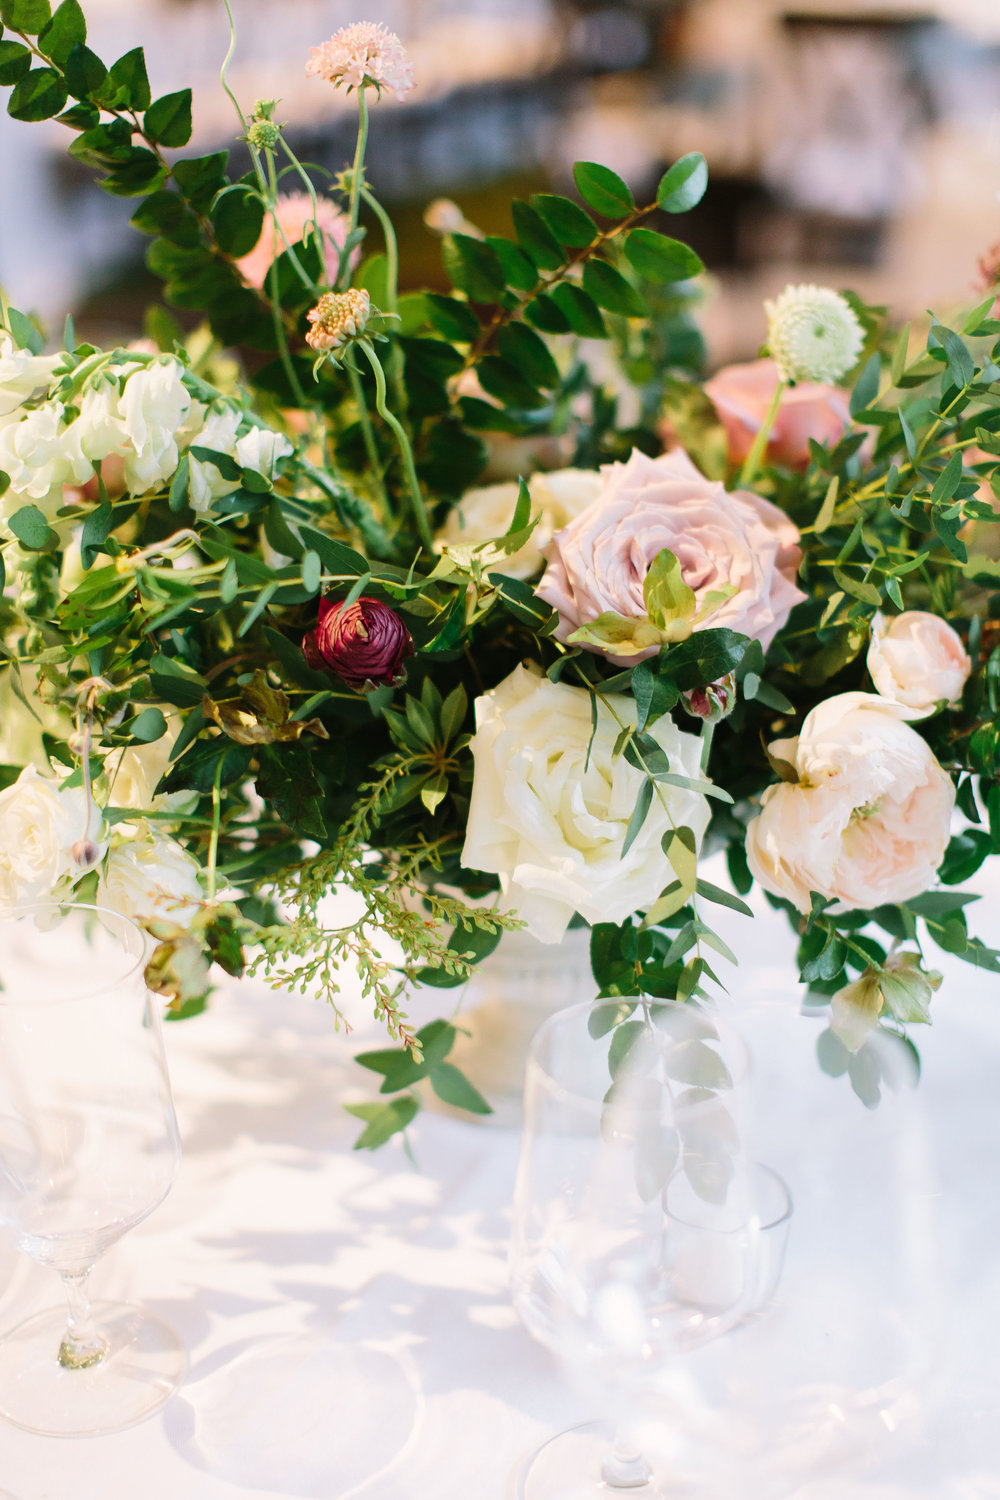 Lush, natural centerpiece of garden roses, ranunculus, and greenery // Nashville Backyard Wedding Flowers